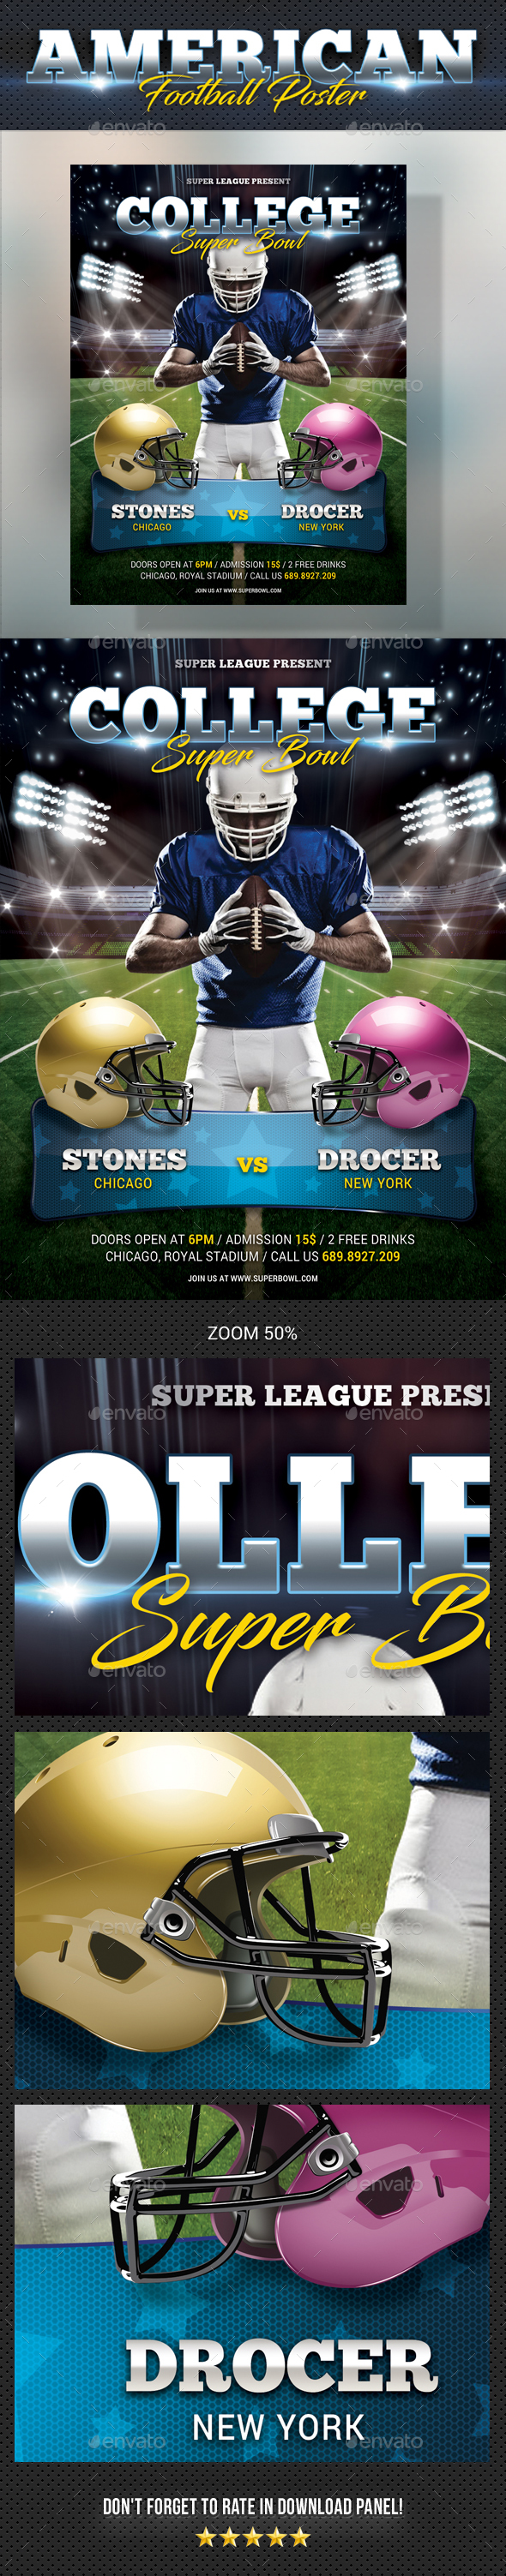 American Football Poster - Signage Print Templates